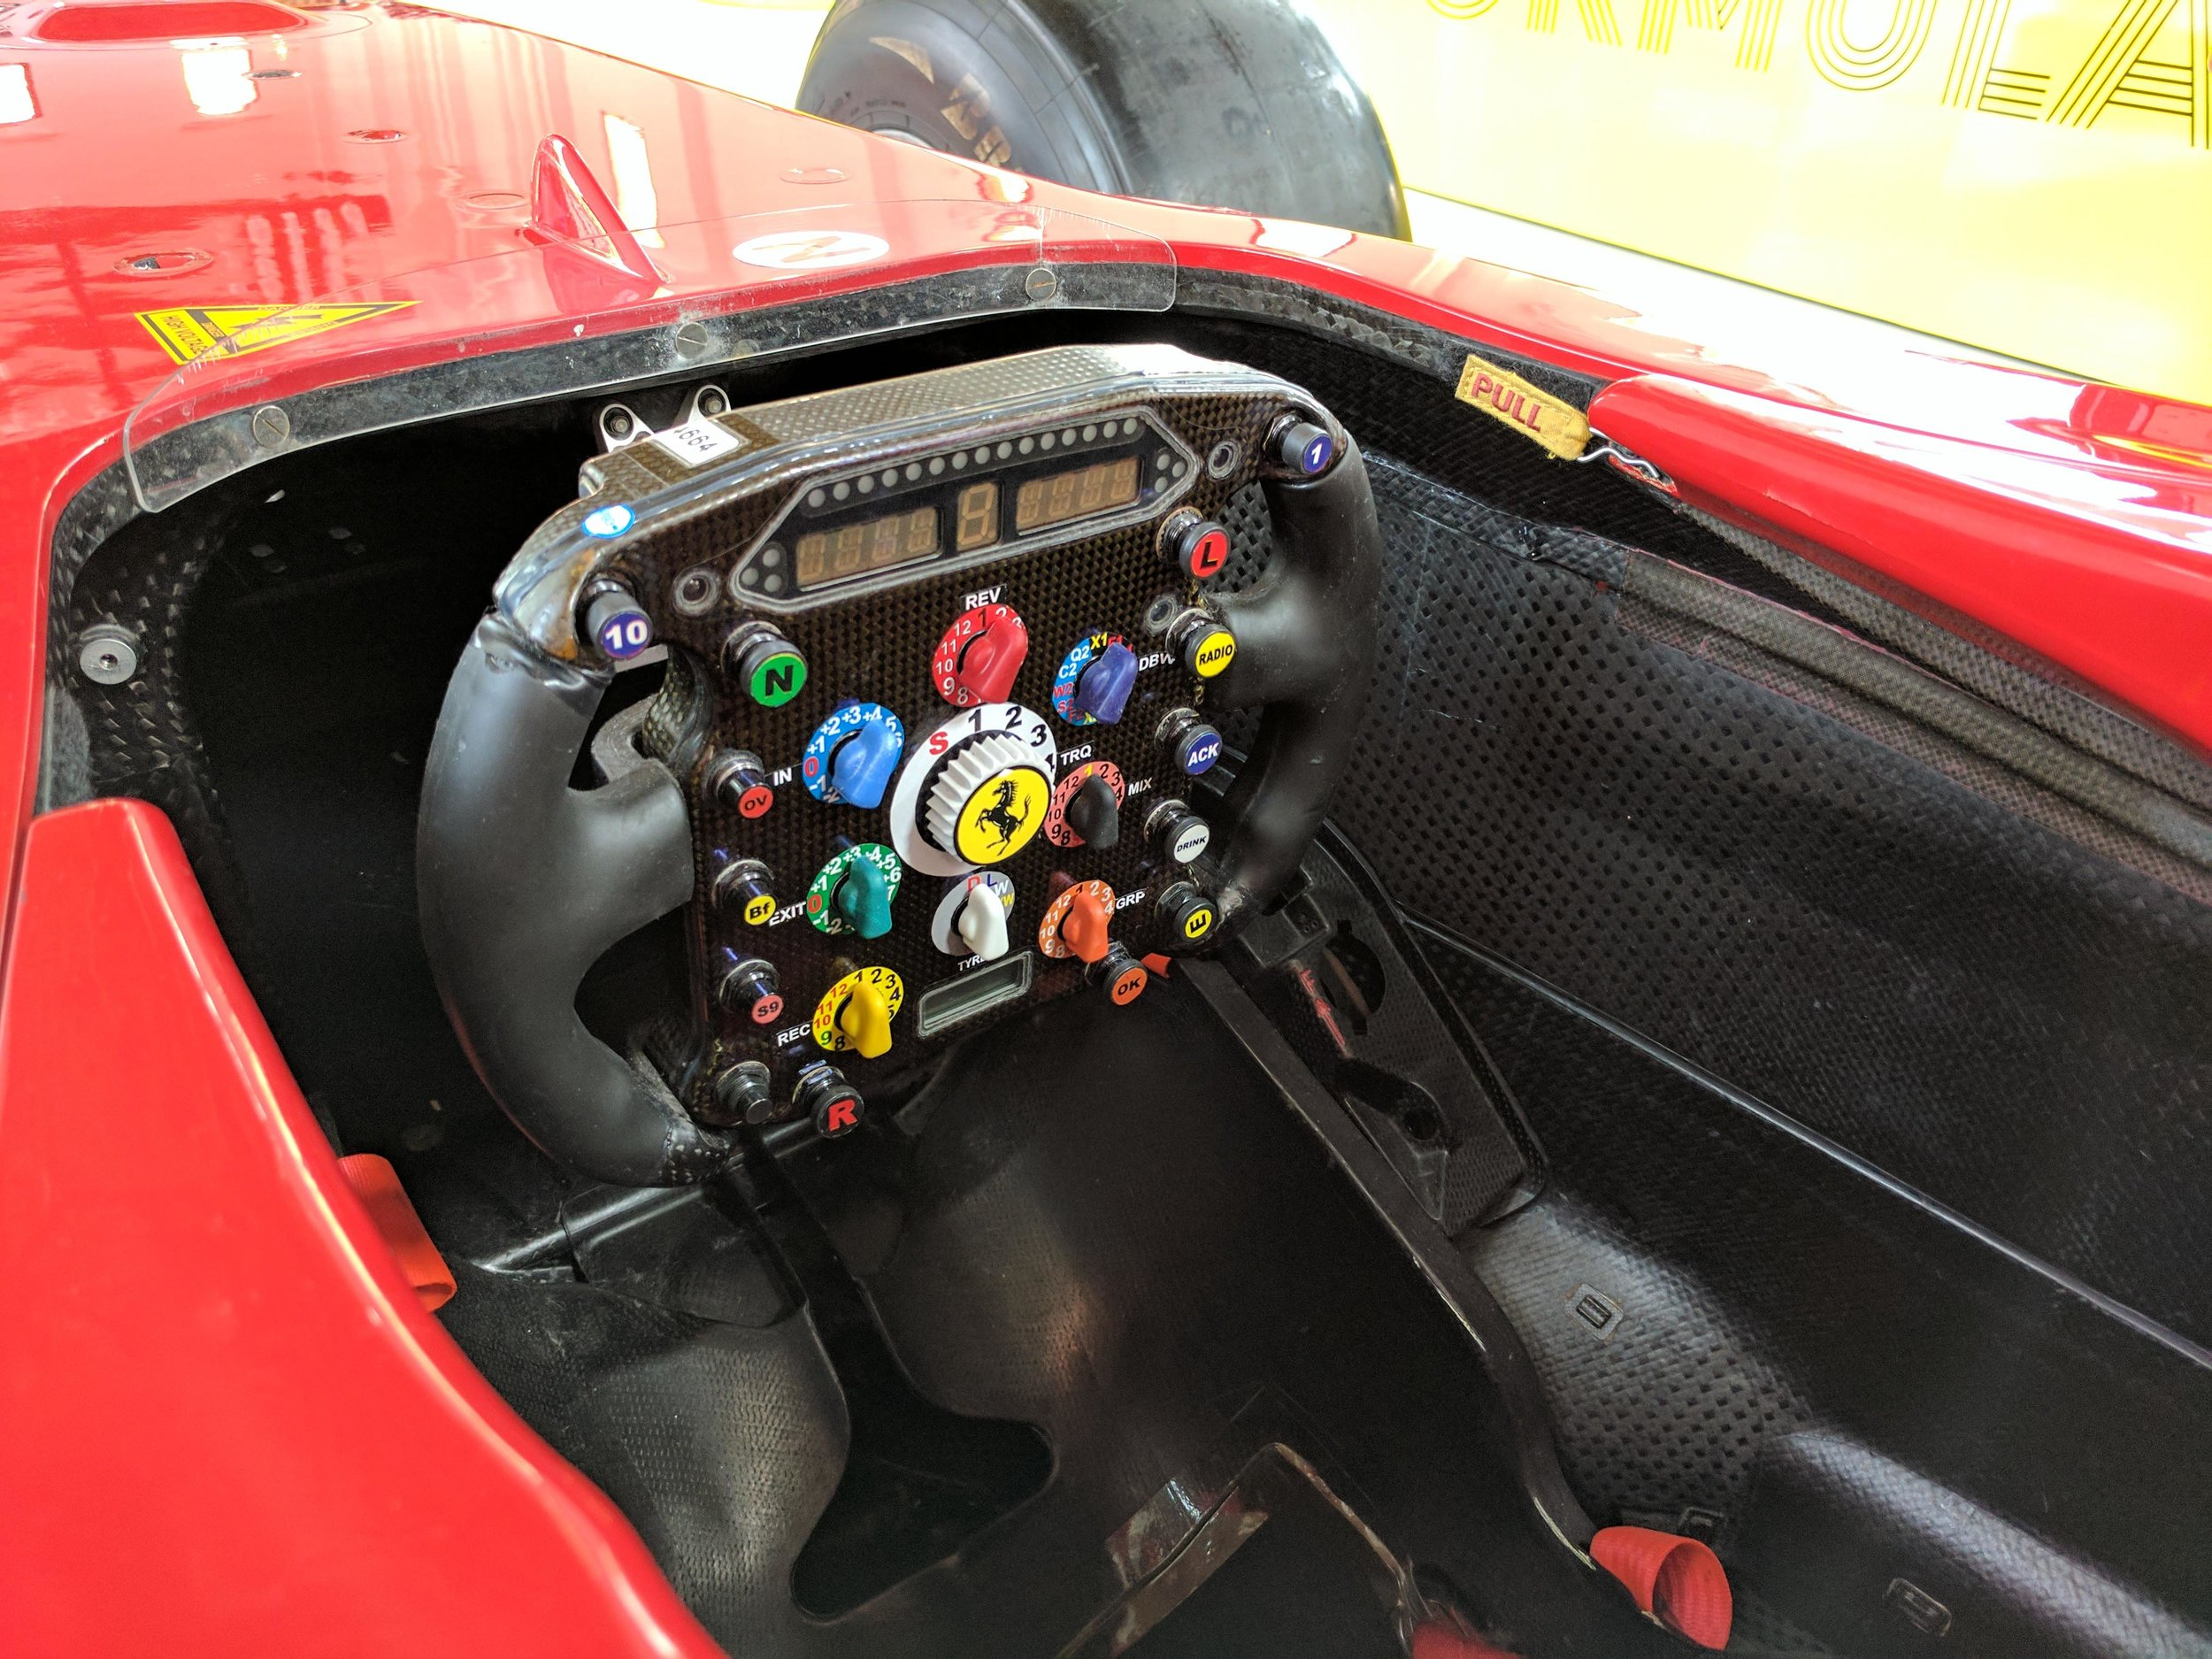 An old style steering wheel. Not as complicated as the ones today.      And a pit board for the current team.